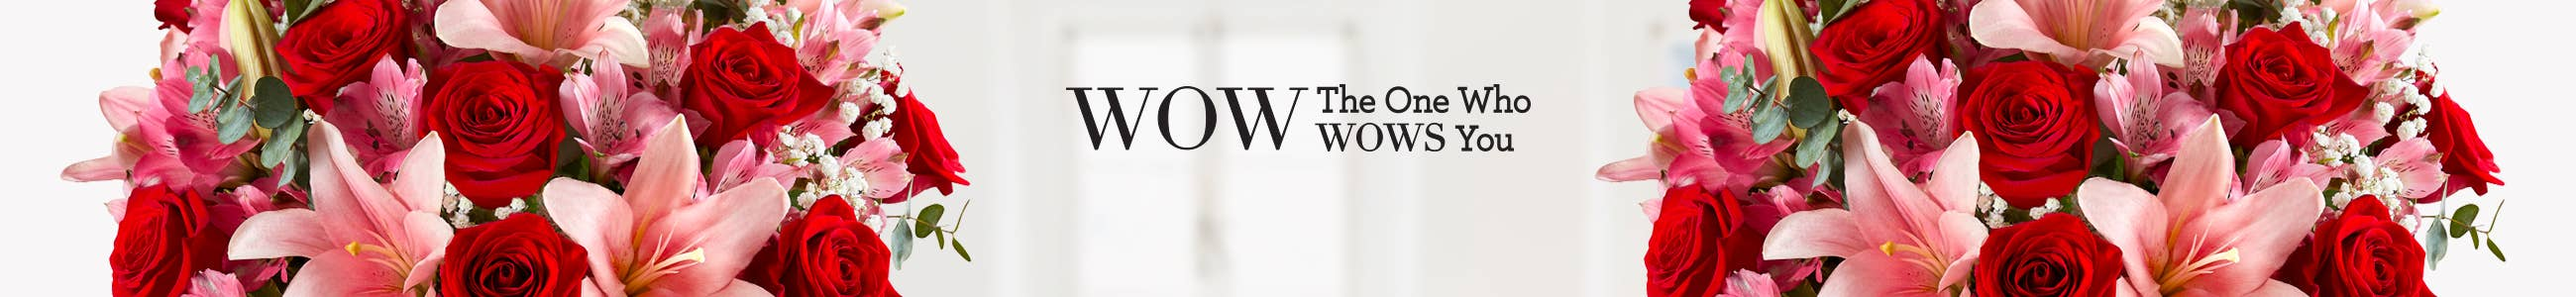 WOW The One Who WOWS You